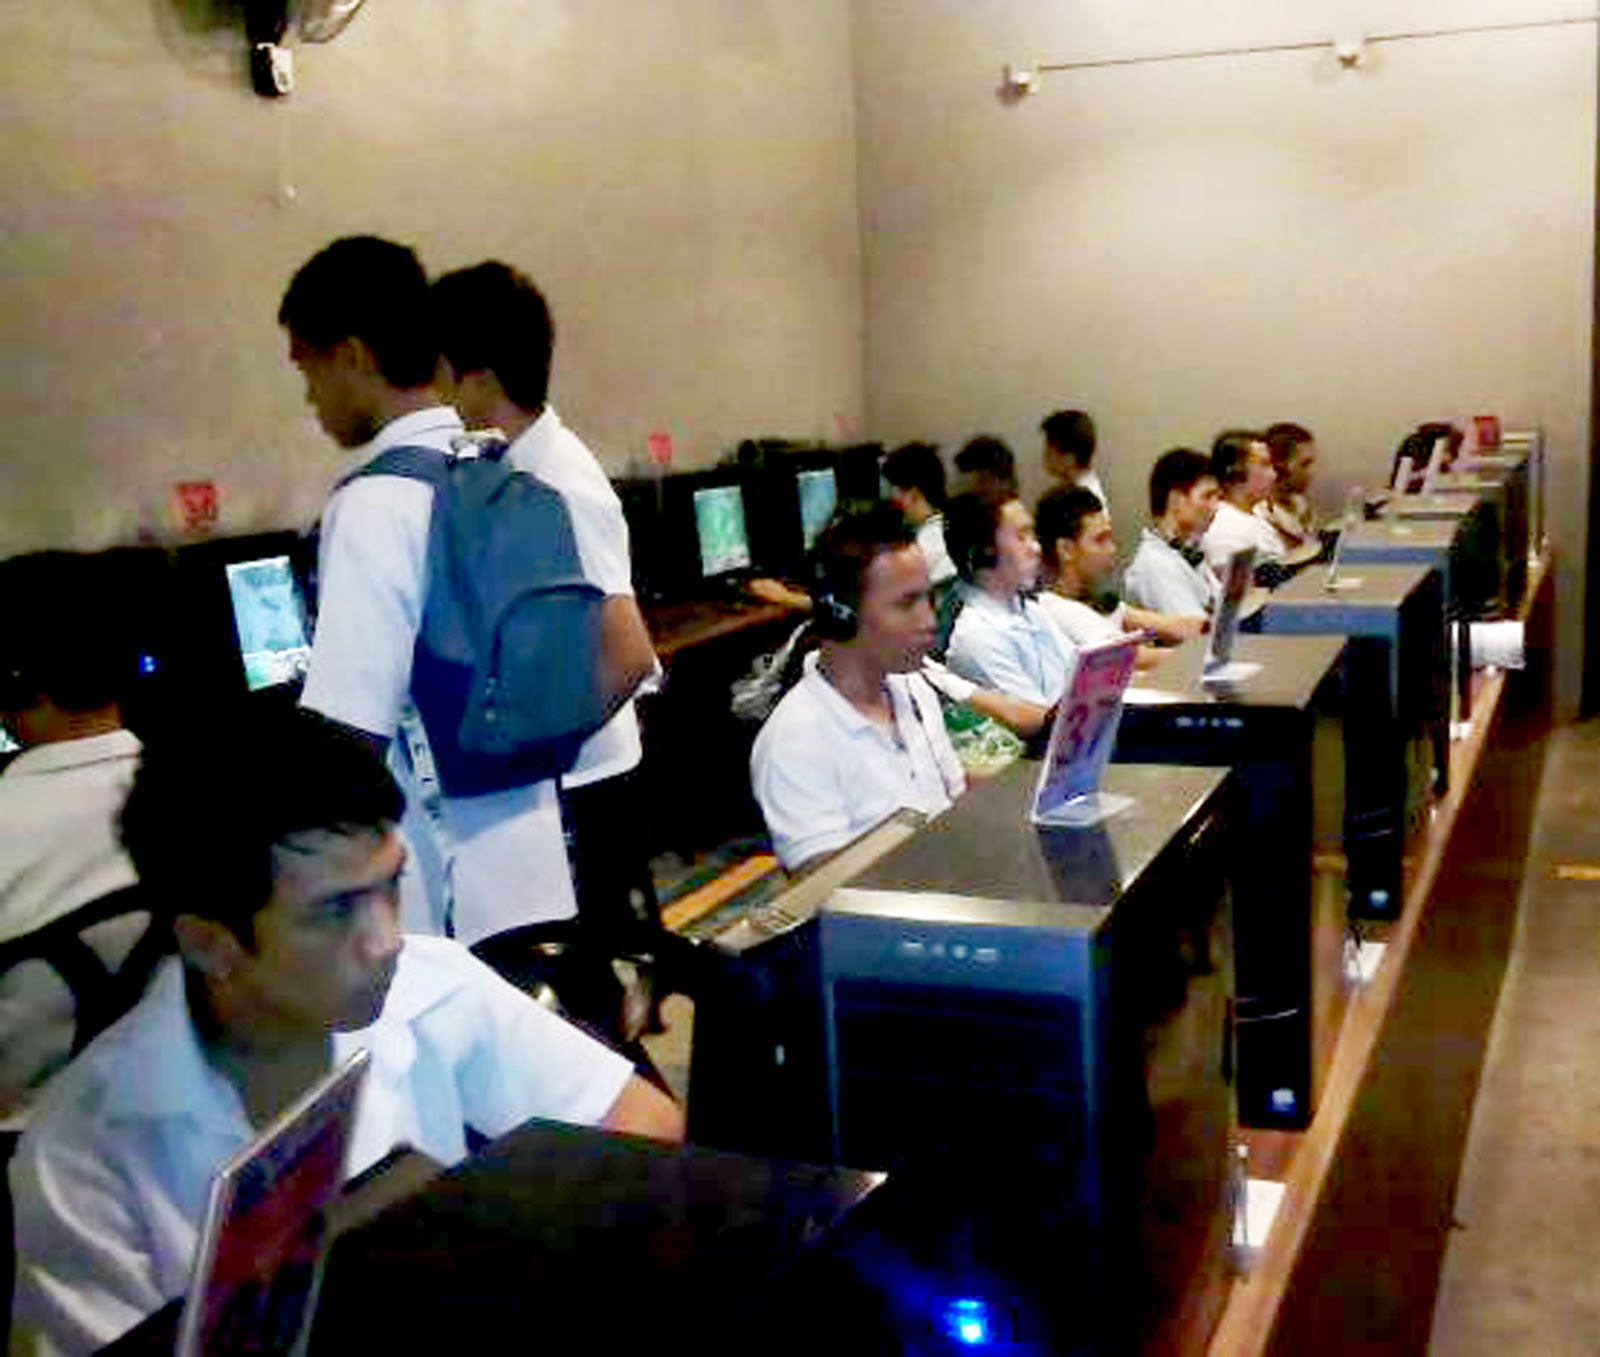 internet cafe 2 essay Free essay: table of contents: executive summary page 2 issue  strategy  regarding the franchise for easy internet cafe we qualified 4 offers.